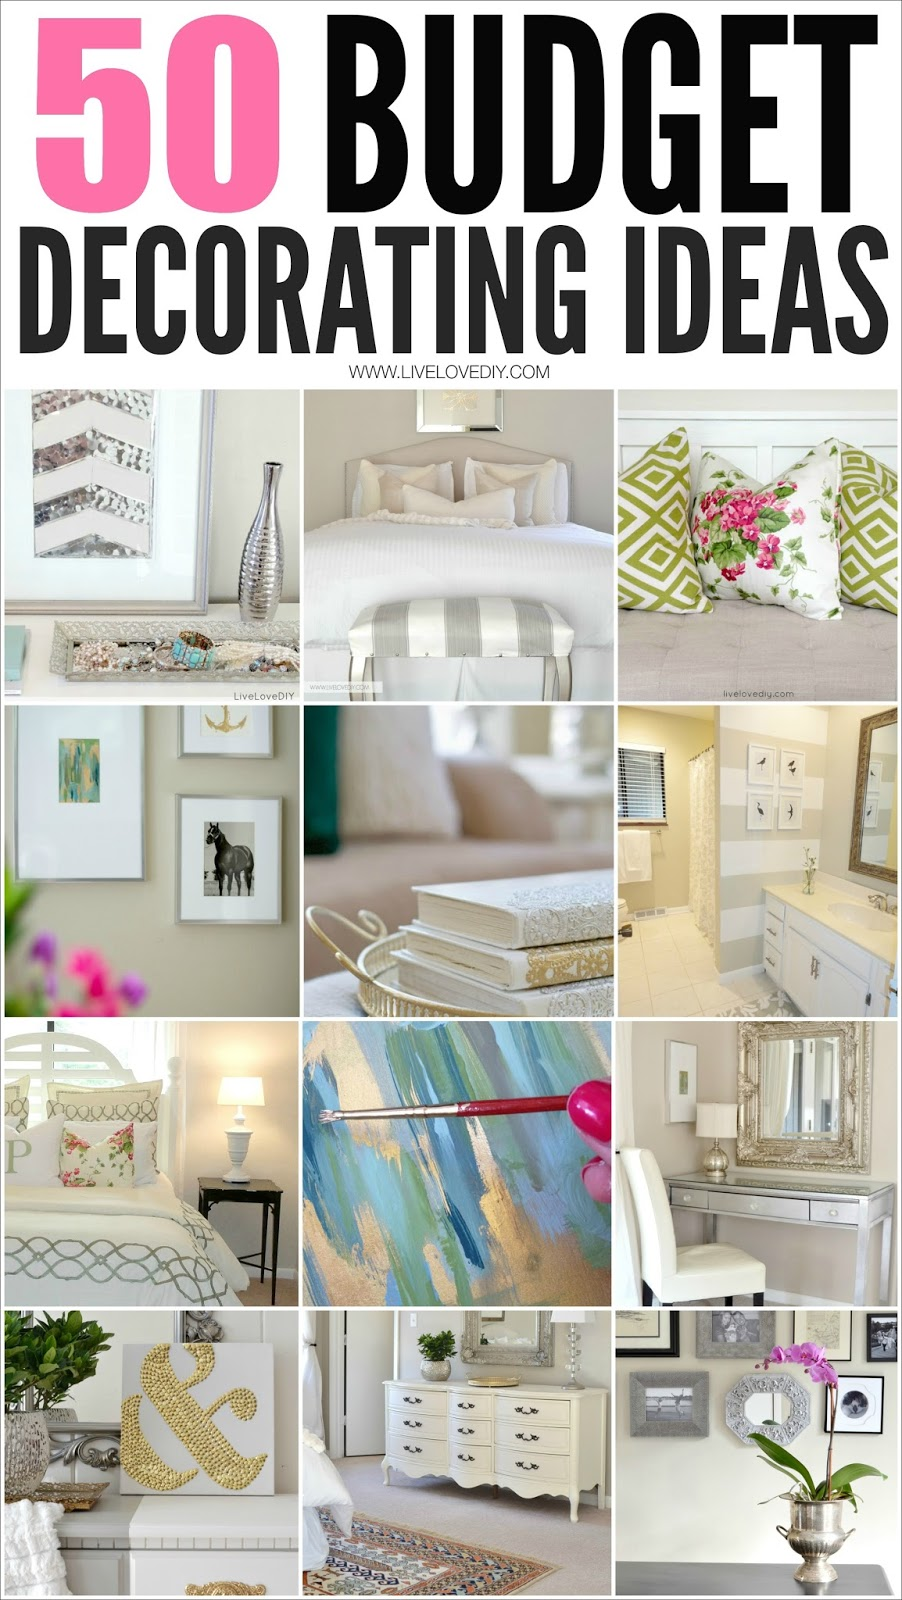 50 amazing budget decorating tips everyone should know i ForNew Home Decorating Ideas On A Budget